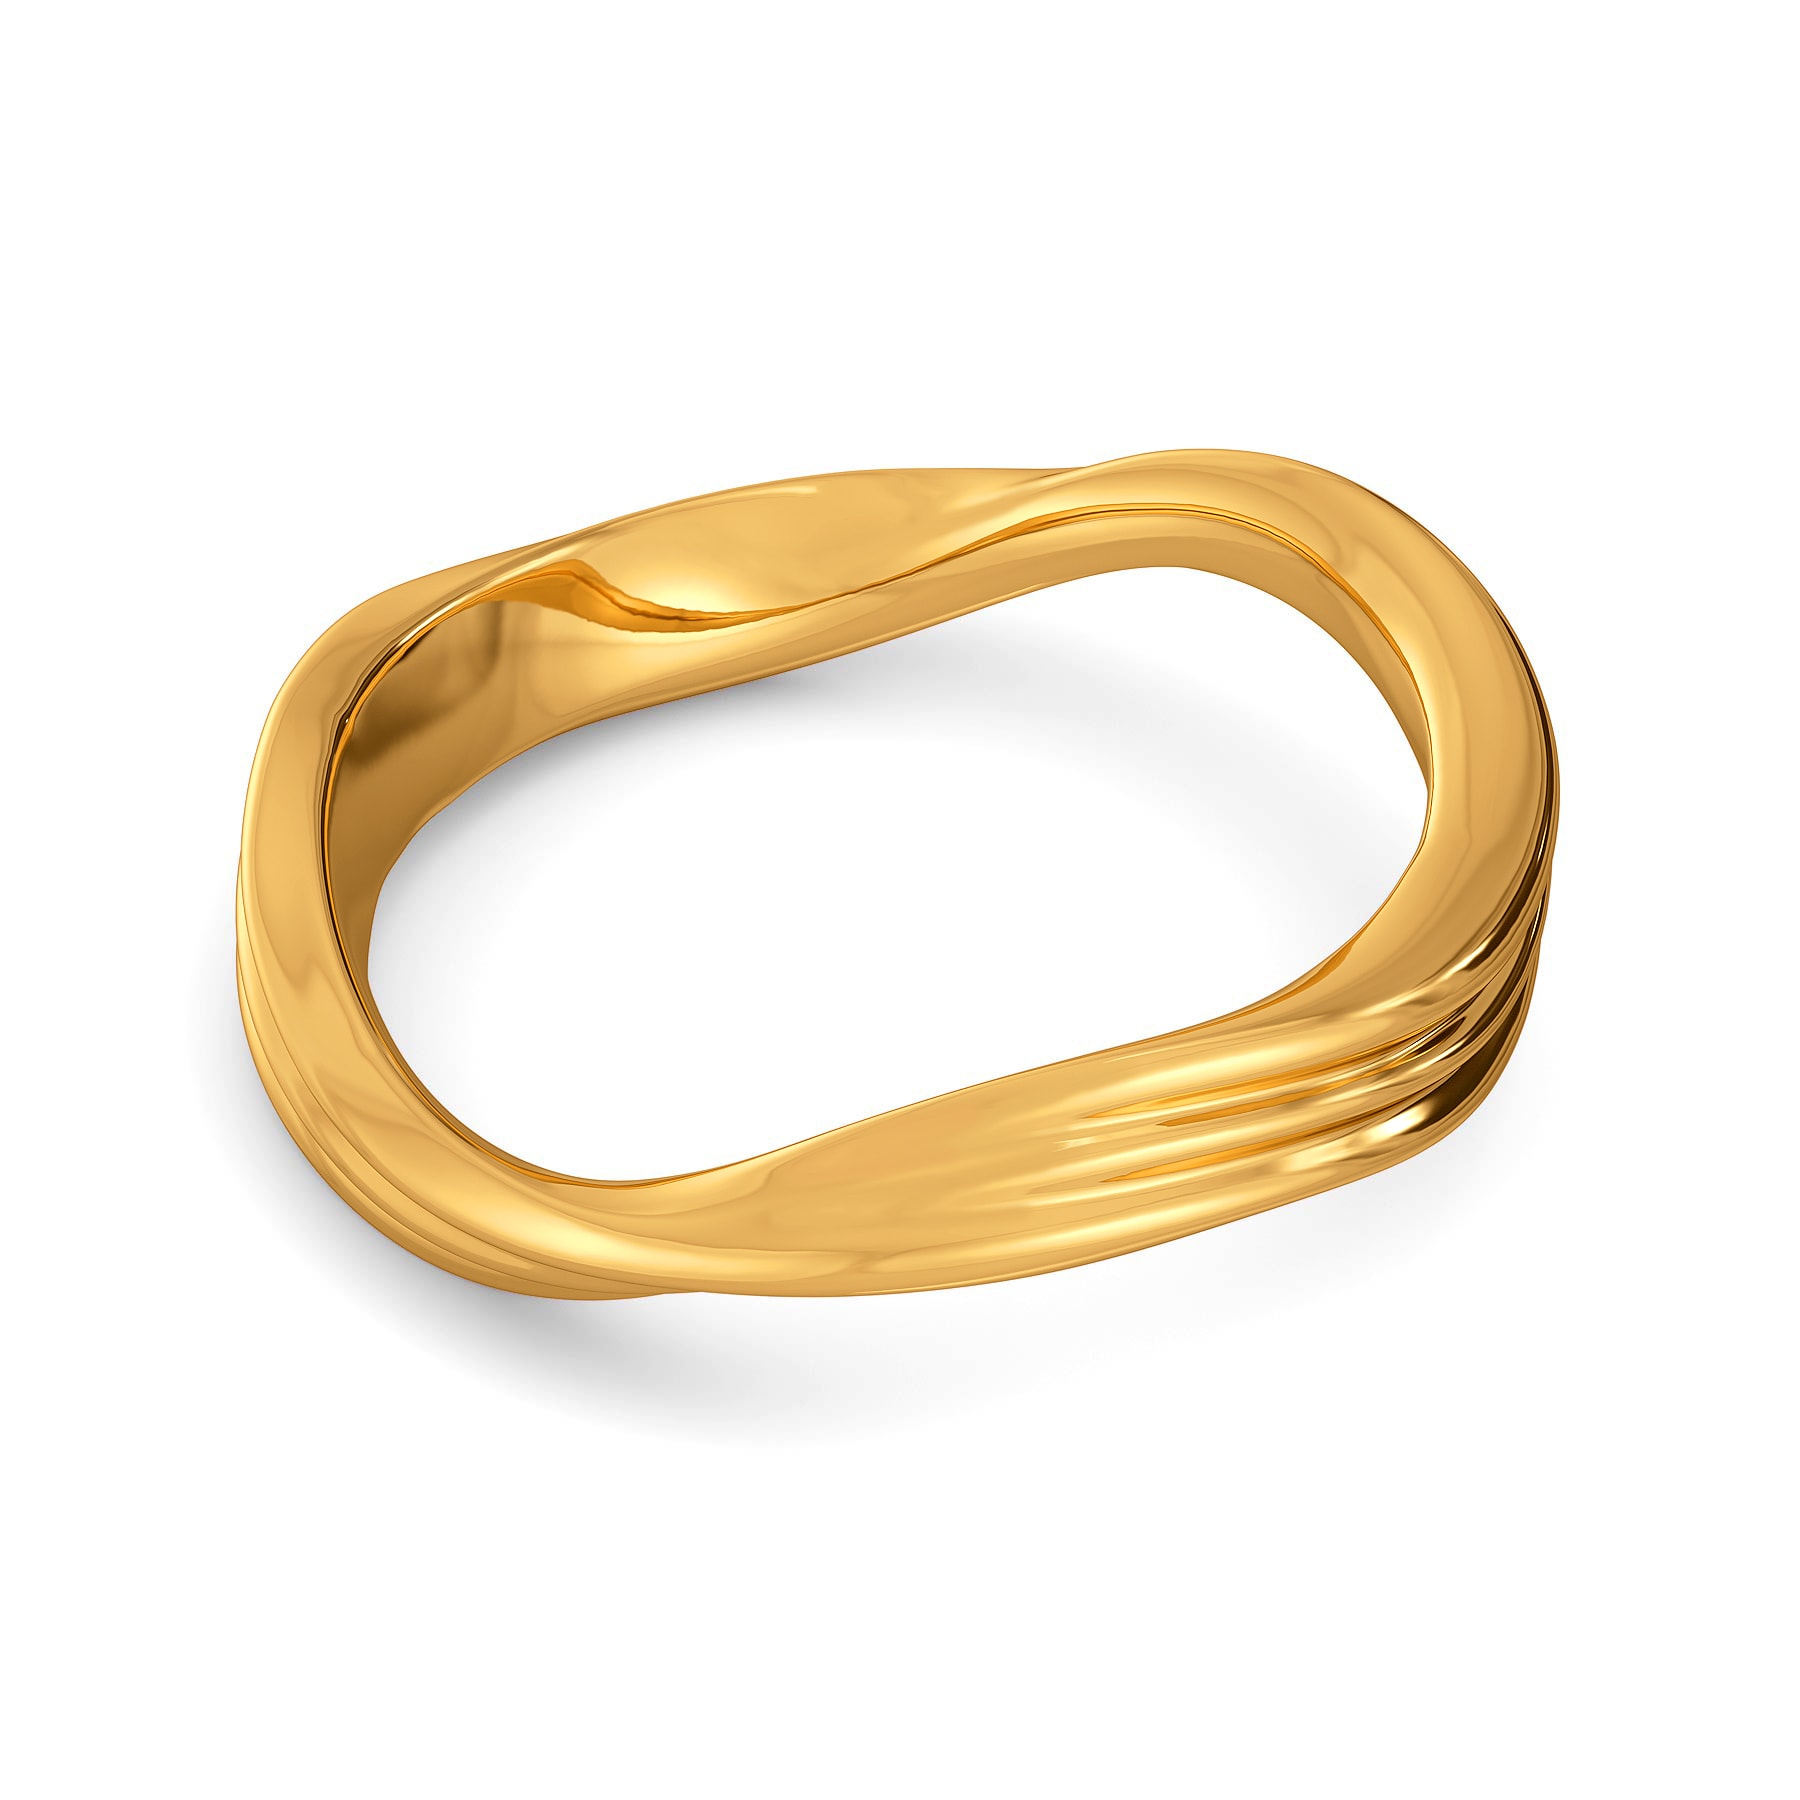 Dreamy Drapes Gold Rings